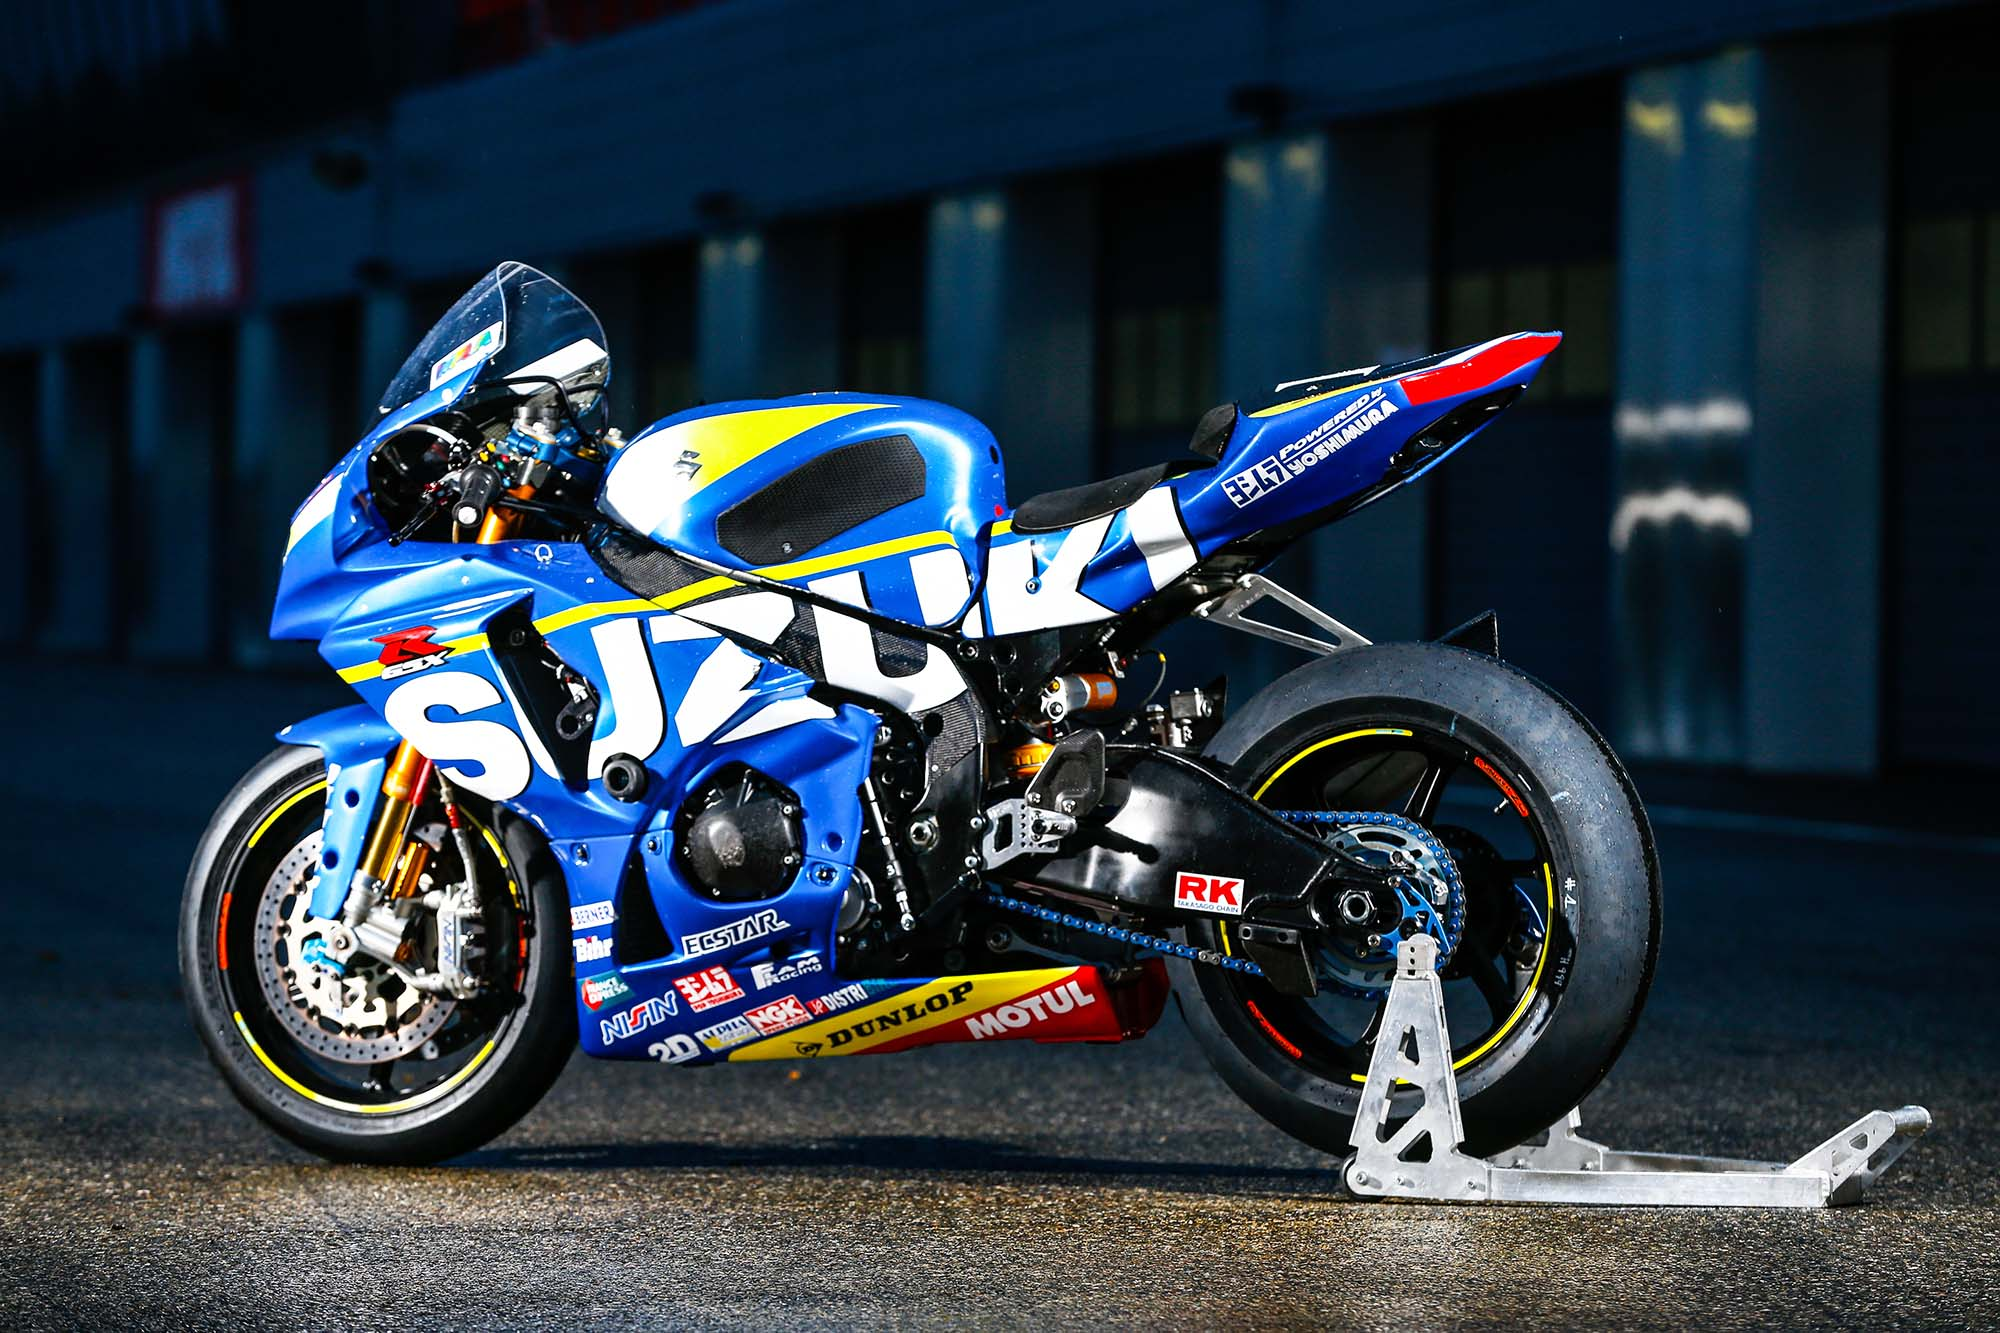 SERT Suzuki GSX-R1000 World Endurance Race Bike Race Bike Photos